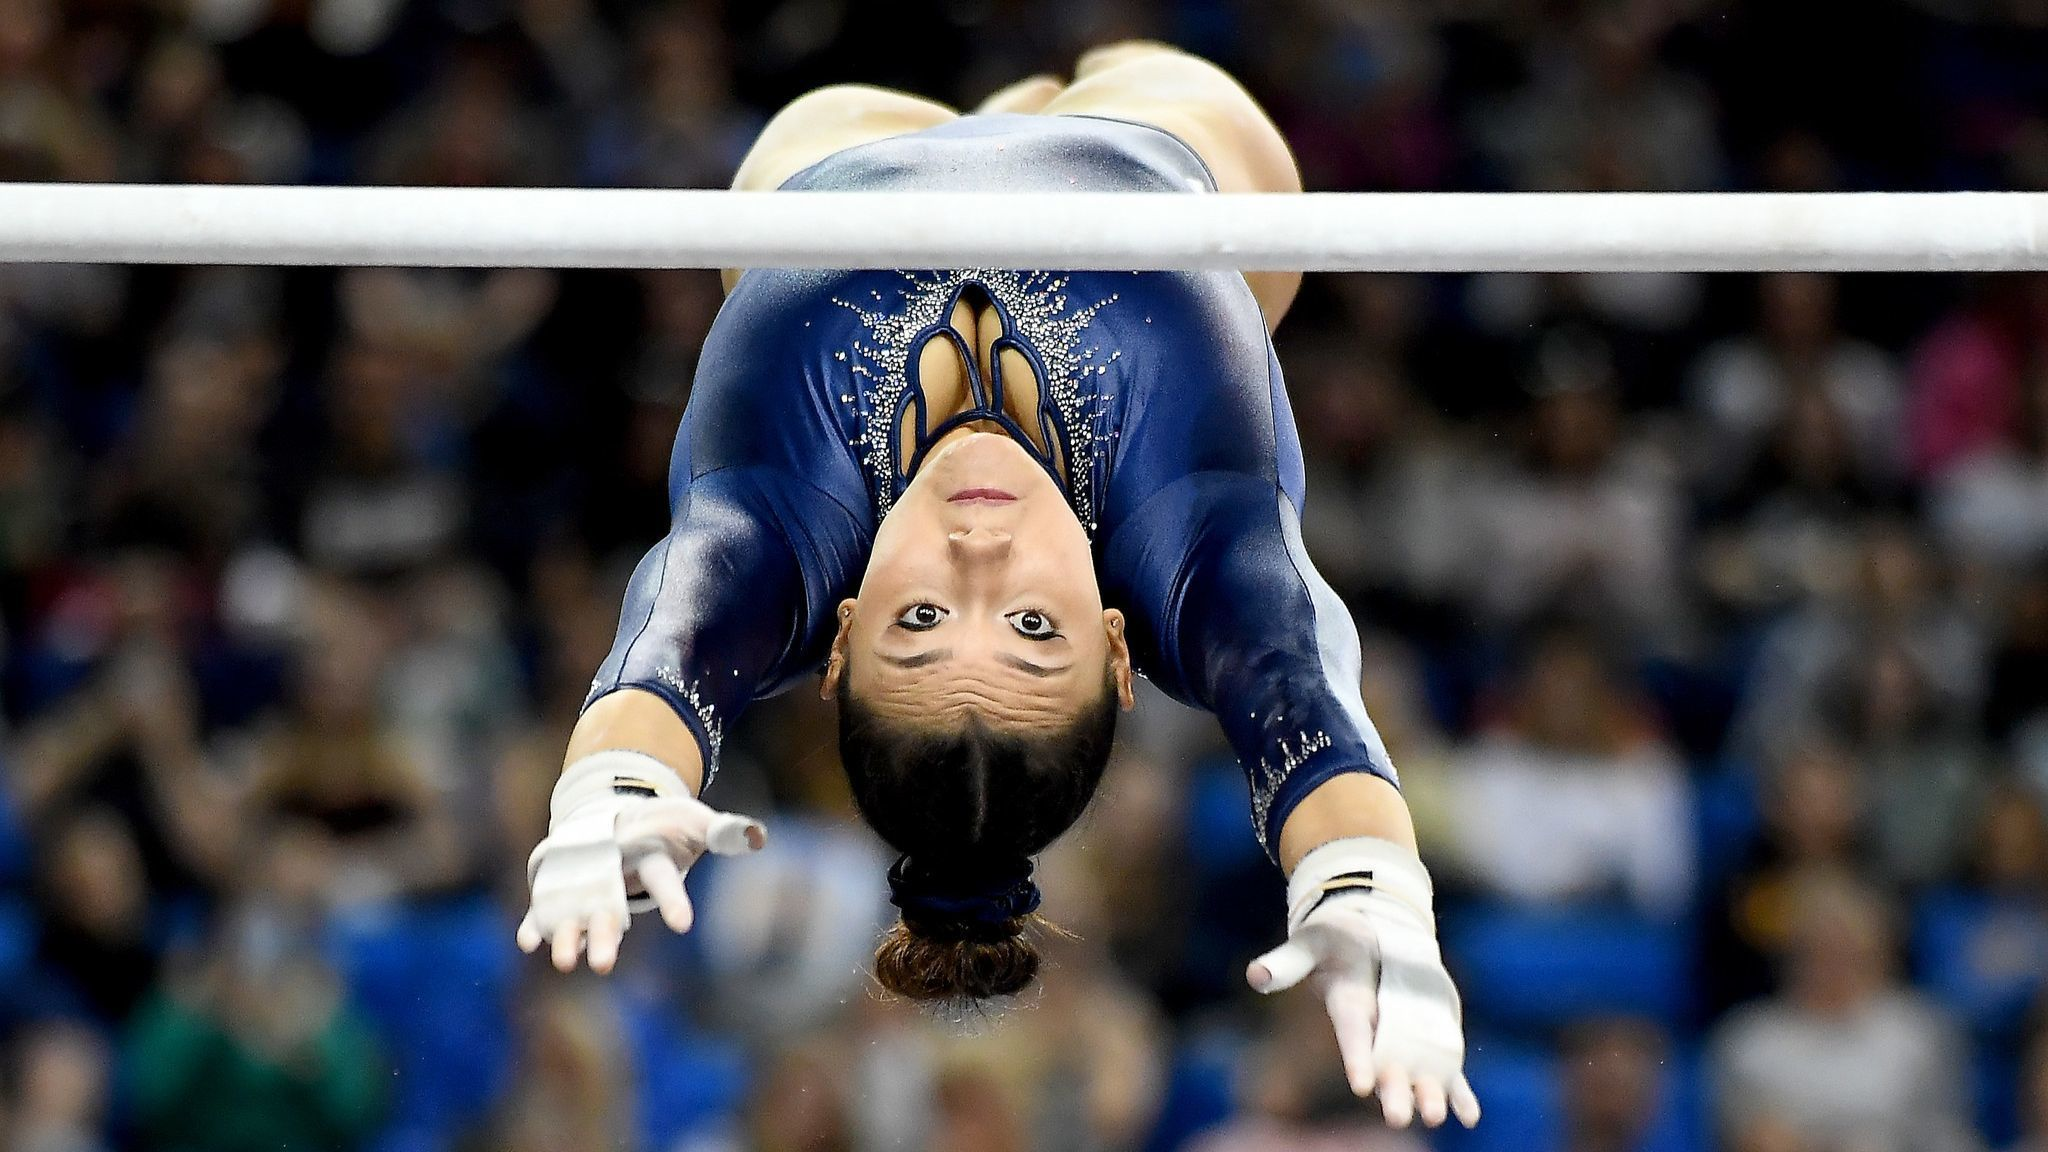 Kyla Ross, UCLA's most dominant gymnast, continues to keep fans spellbound